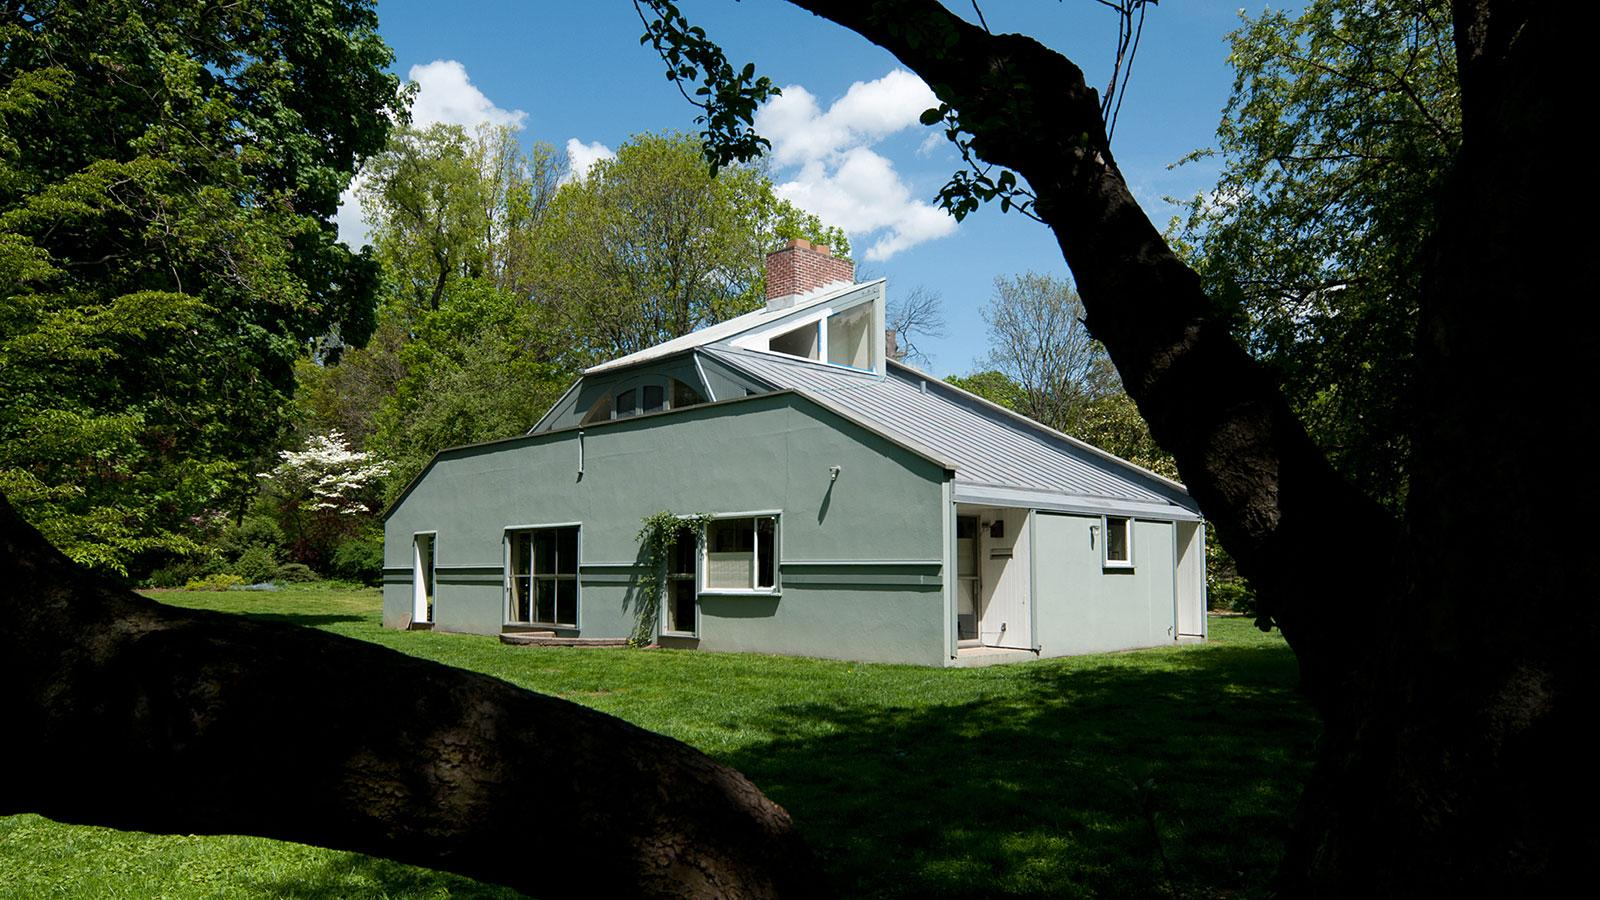 Vanna Venturi House | Ten Buildings That Changed America | WTTW Chicago Pictures